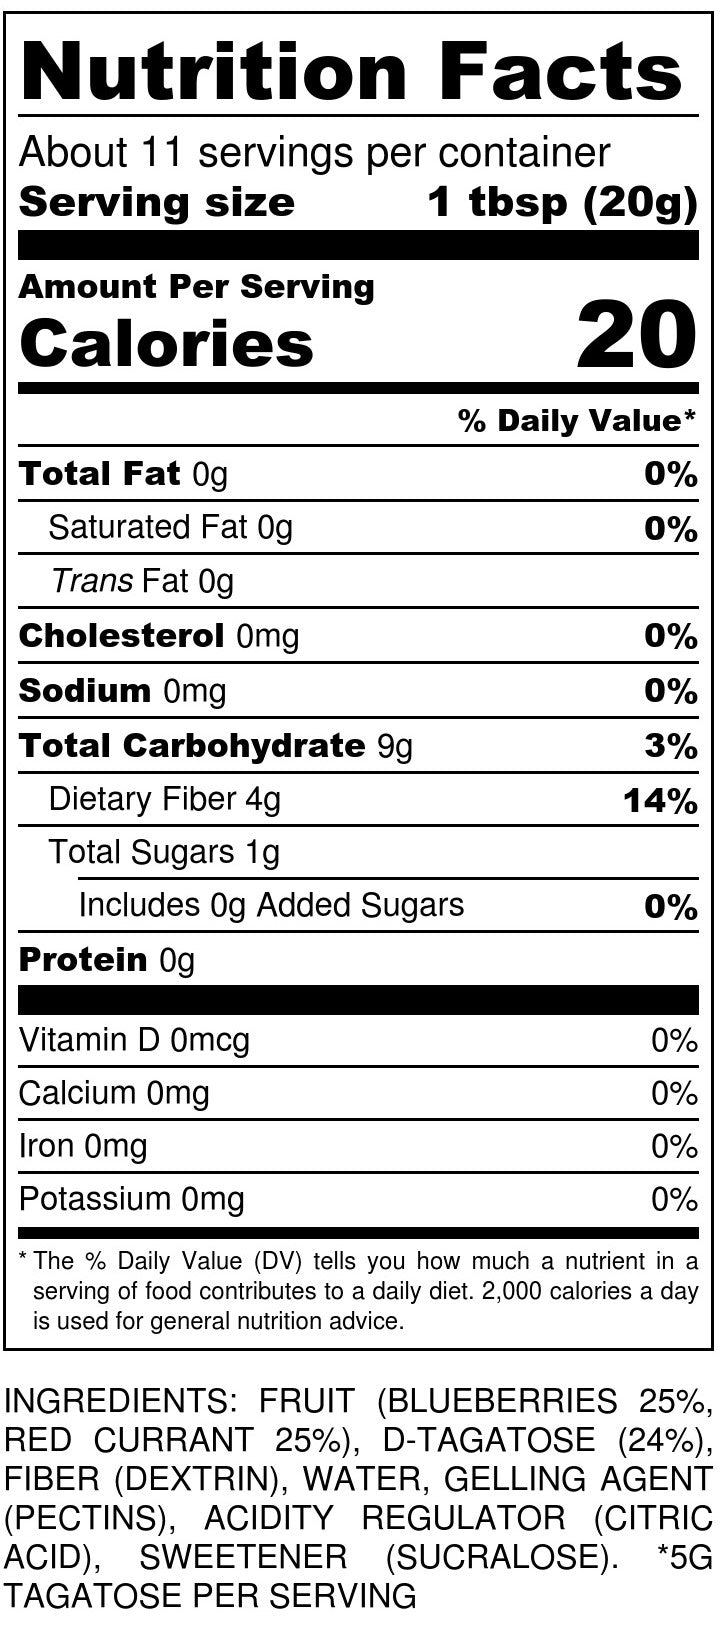 No Sugar Added Blueberry/Red Currant Jam Nutrition Facts